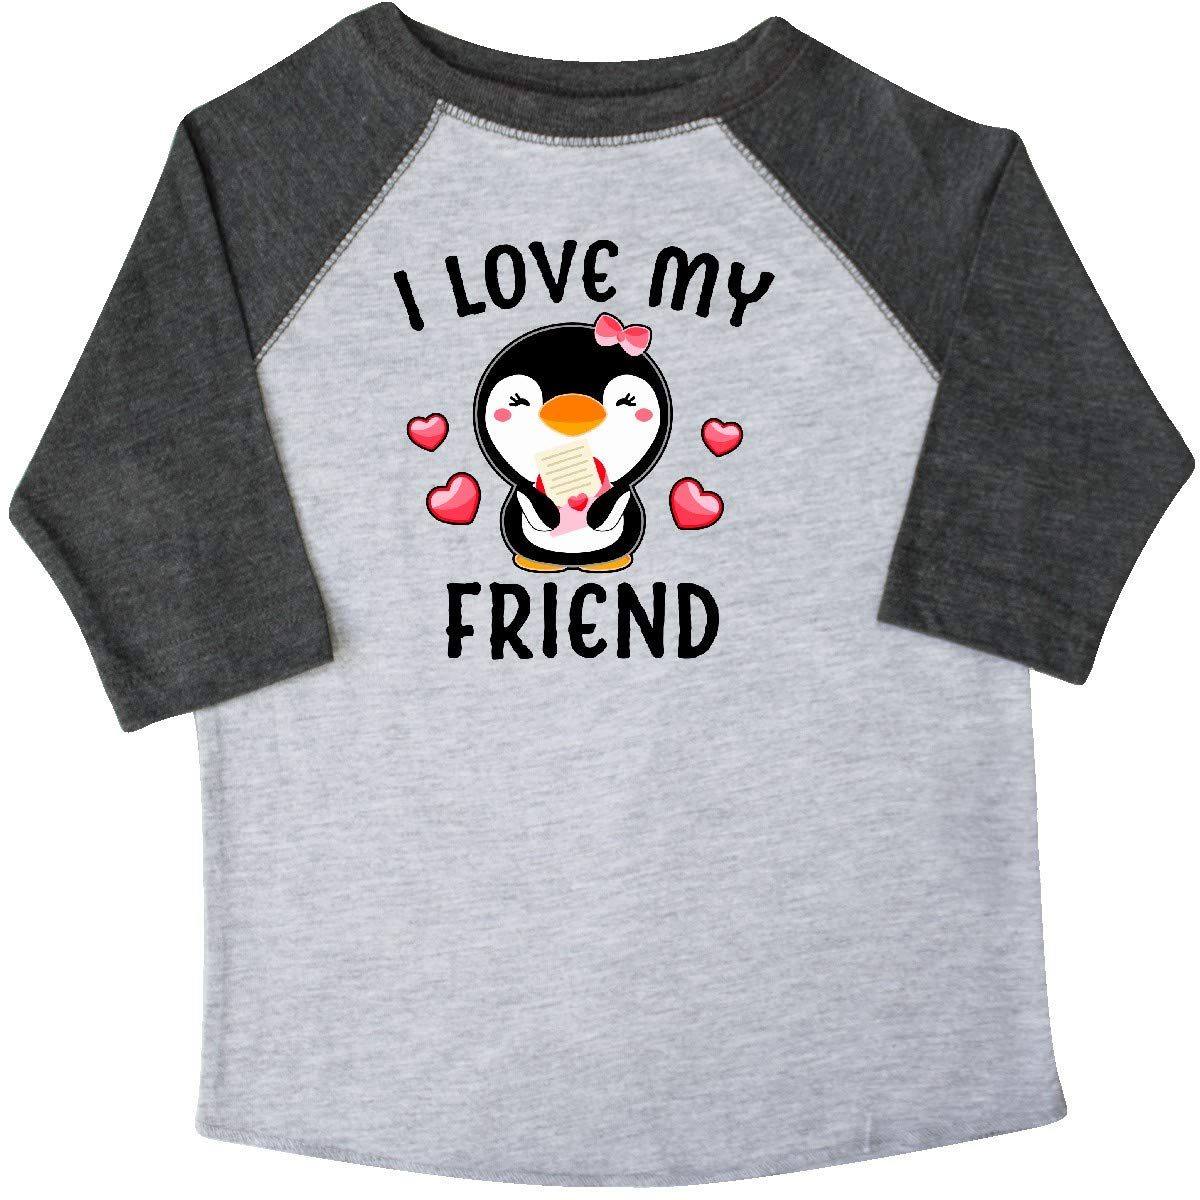 inktastic I Love My Friend with Cute Penguin and Hearts Toddler T-Shirt